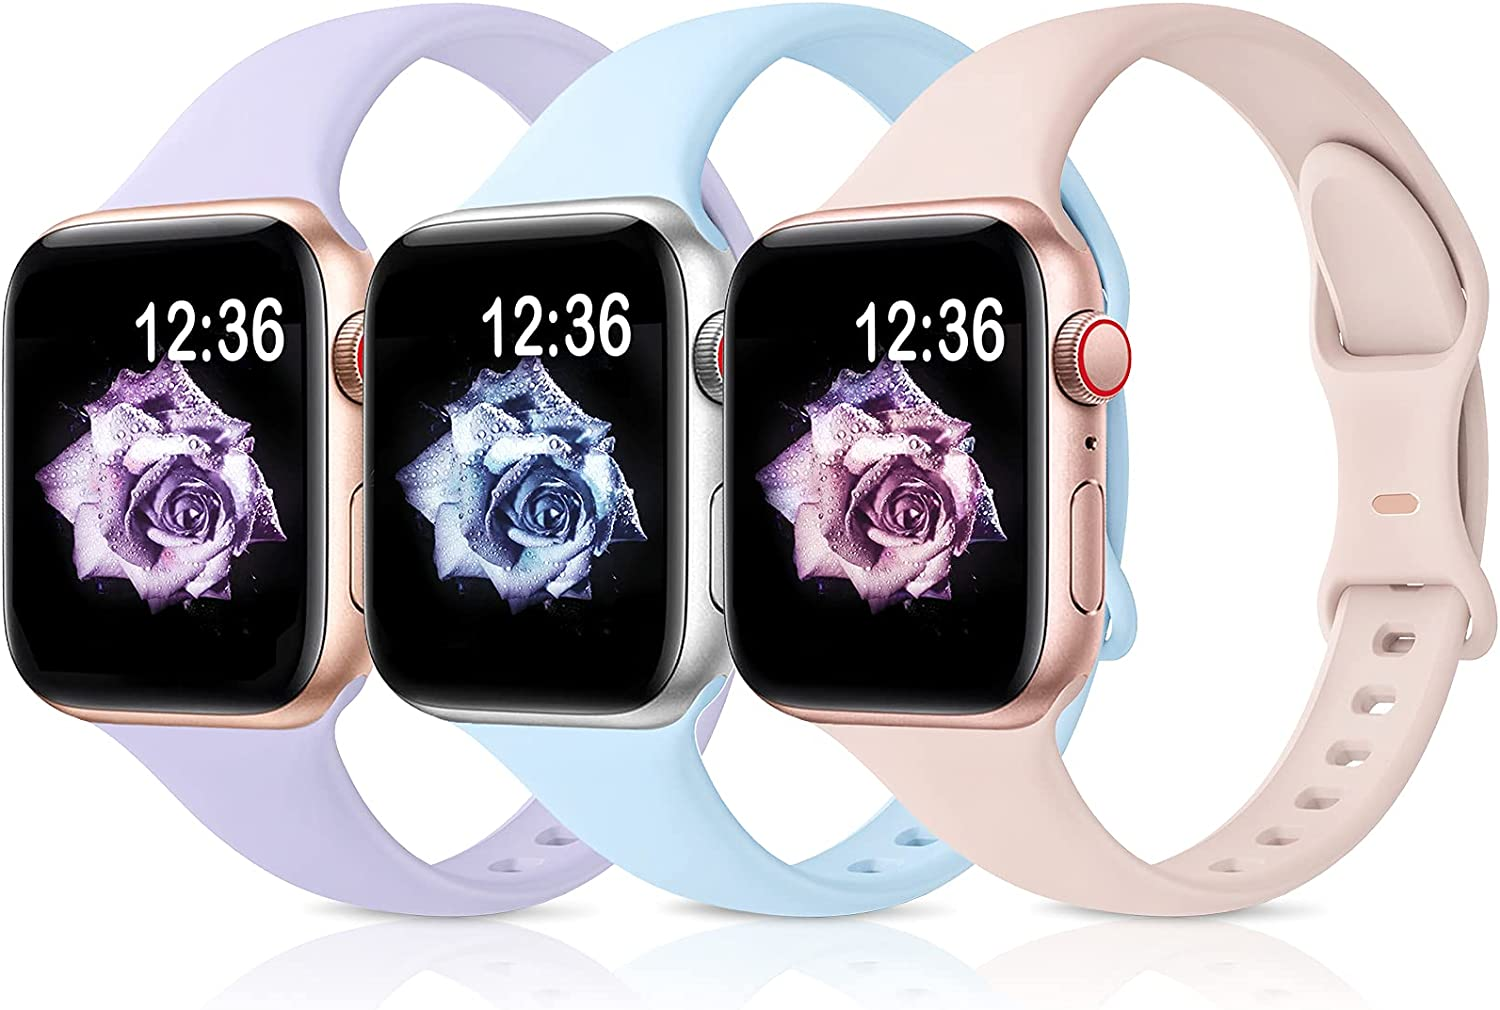 Sport Band Compatible with Apple Watch Bands 38mm 40mm 42mm 44mm,Soft Silicone Narrow Slim Thin Small Strap Wristbands for Iwatch Series 6 5 4 3 2 1 SE, Women Men,G